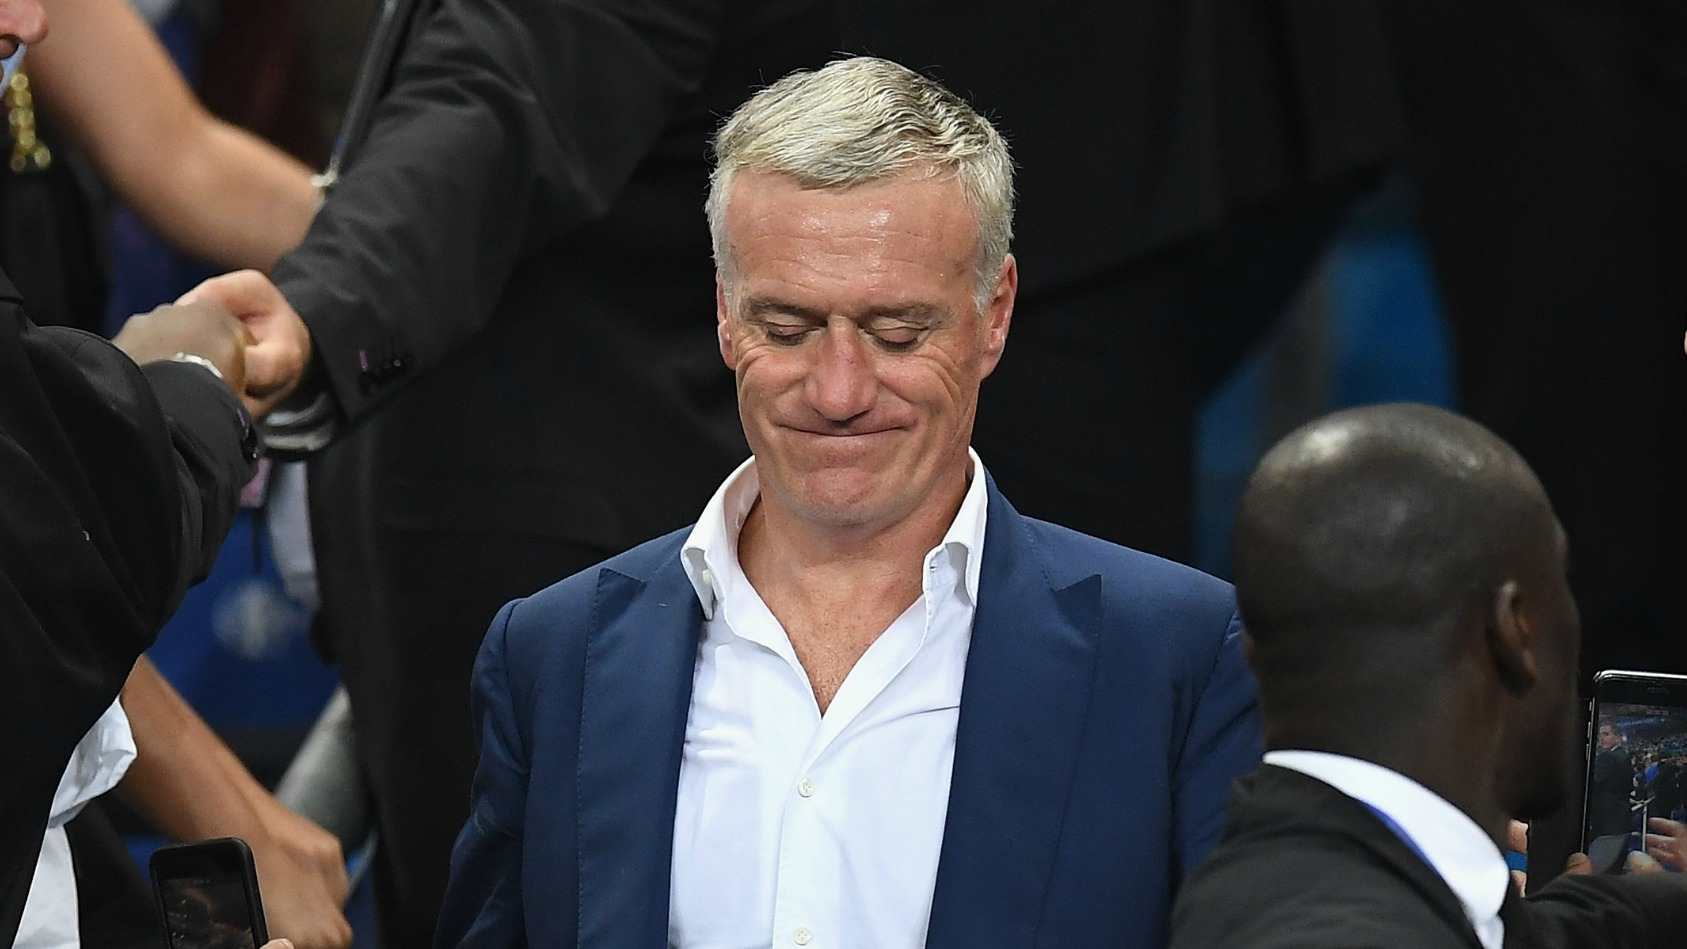 Didier Deschamps' naivety cost France Euro 2016